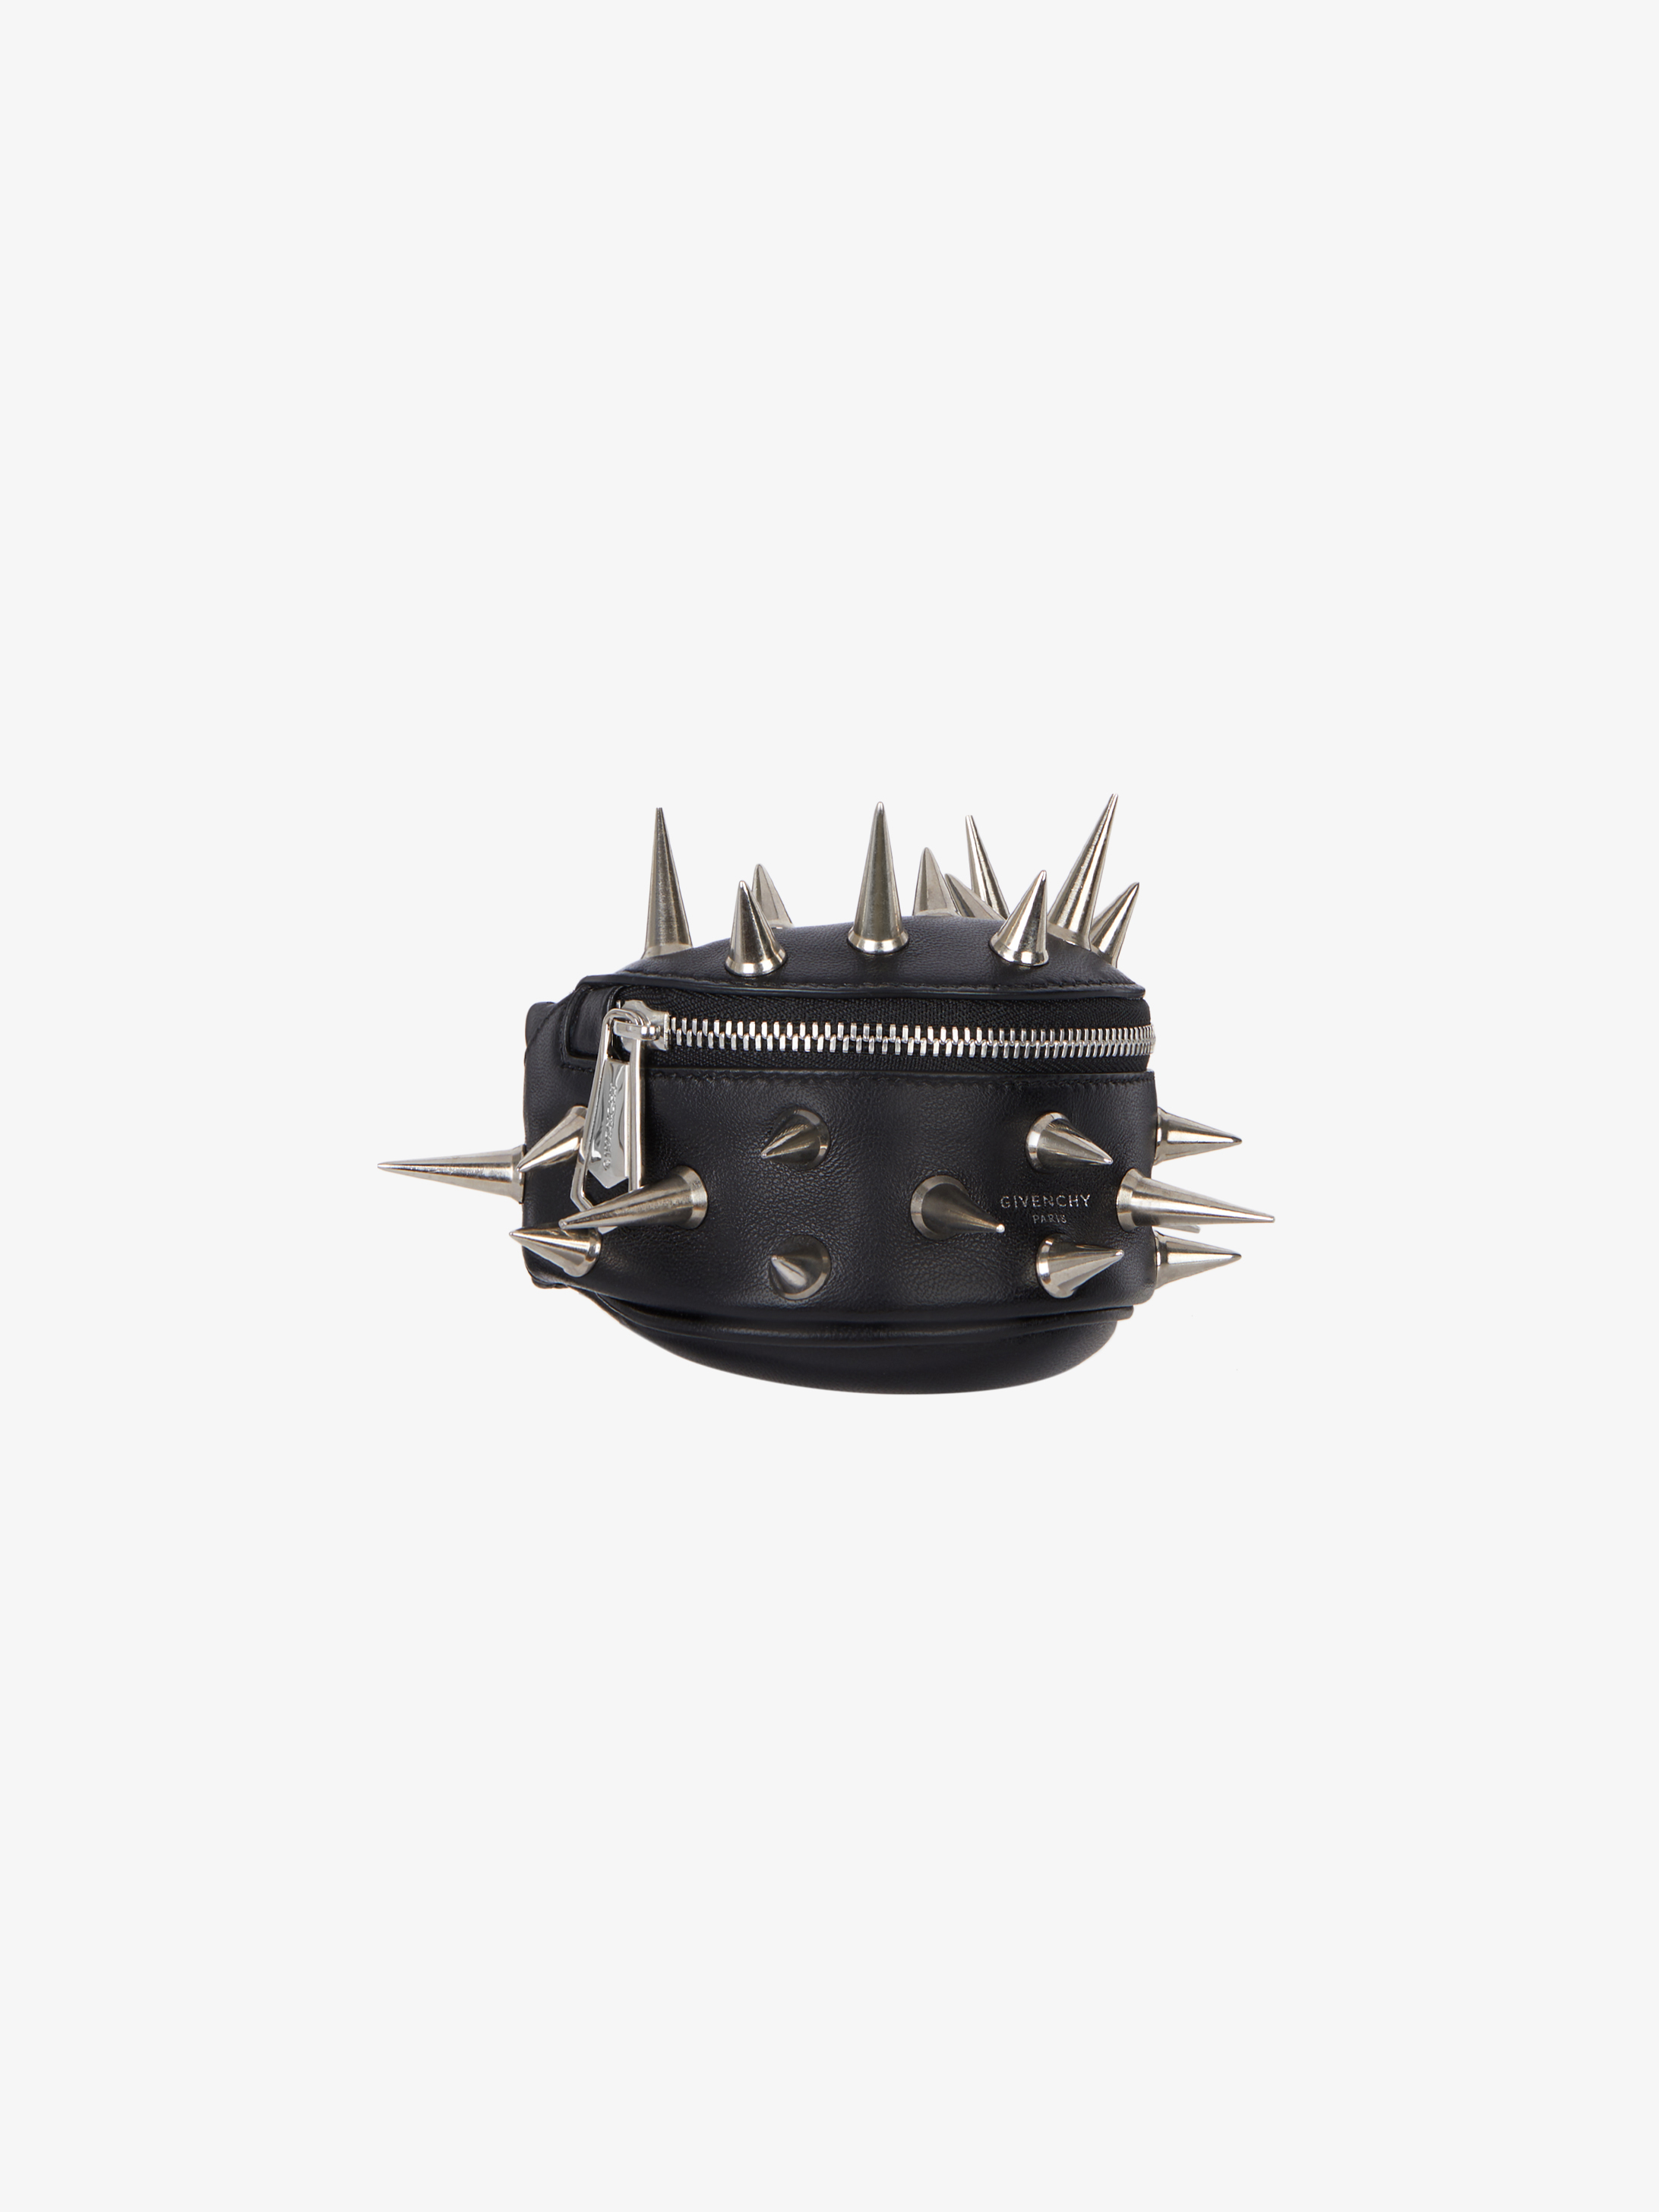 Mini bum bag bracelet in leather with spikes